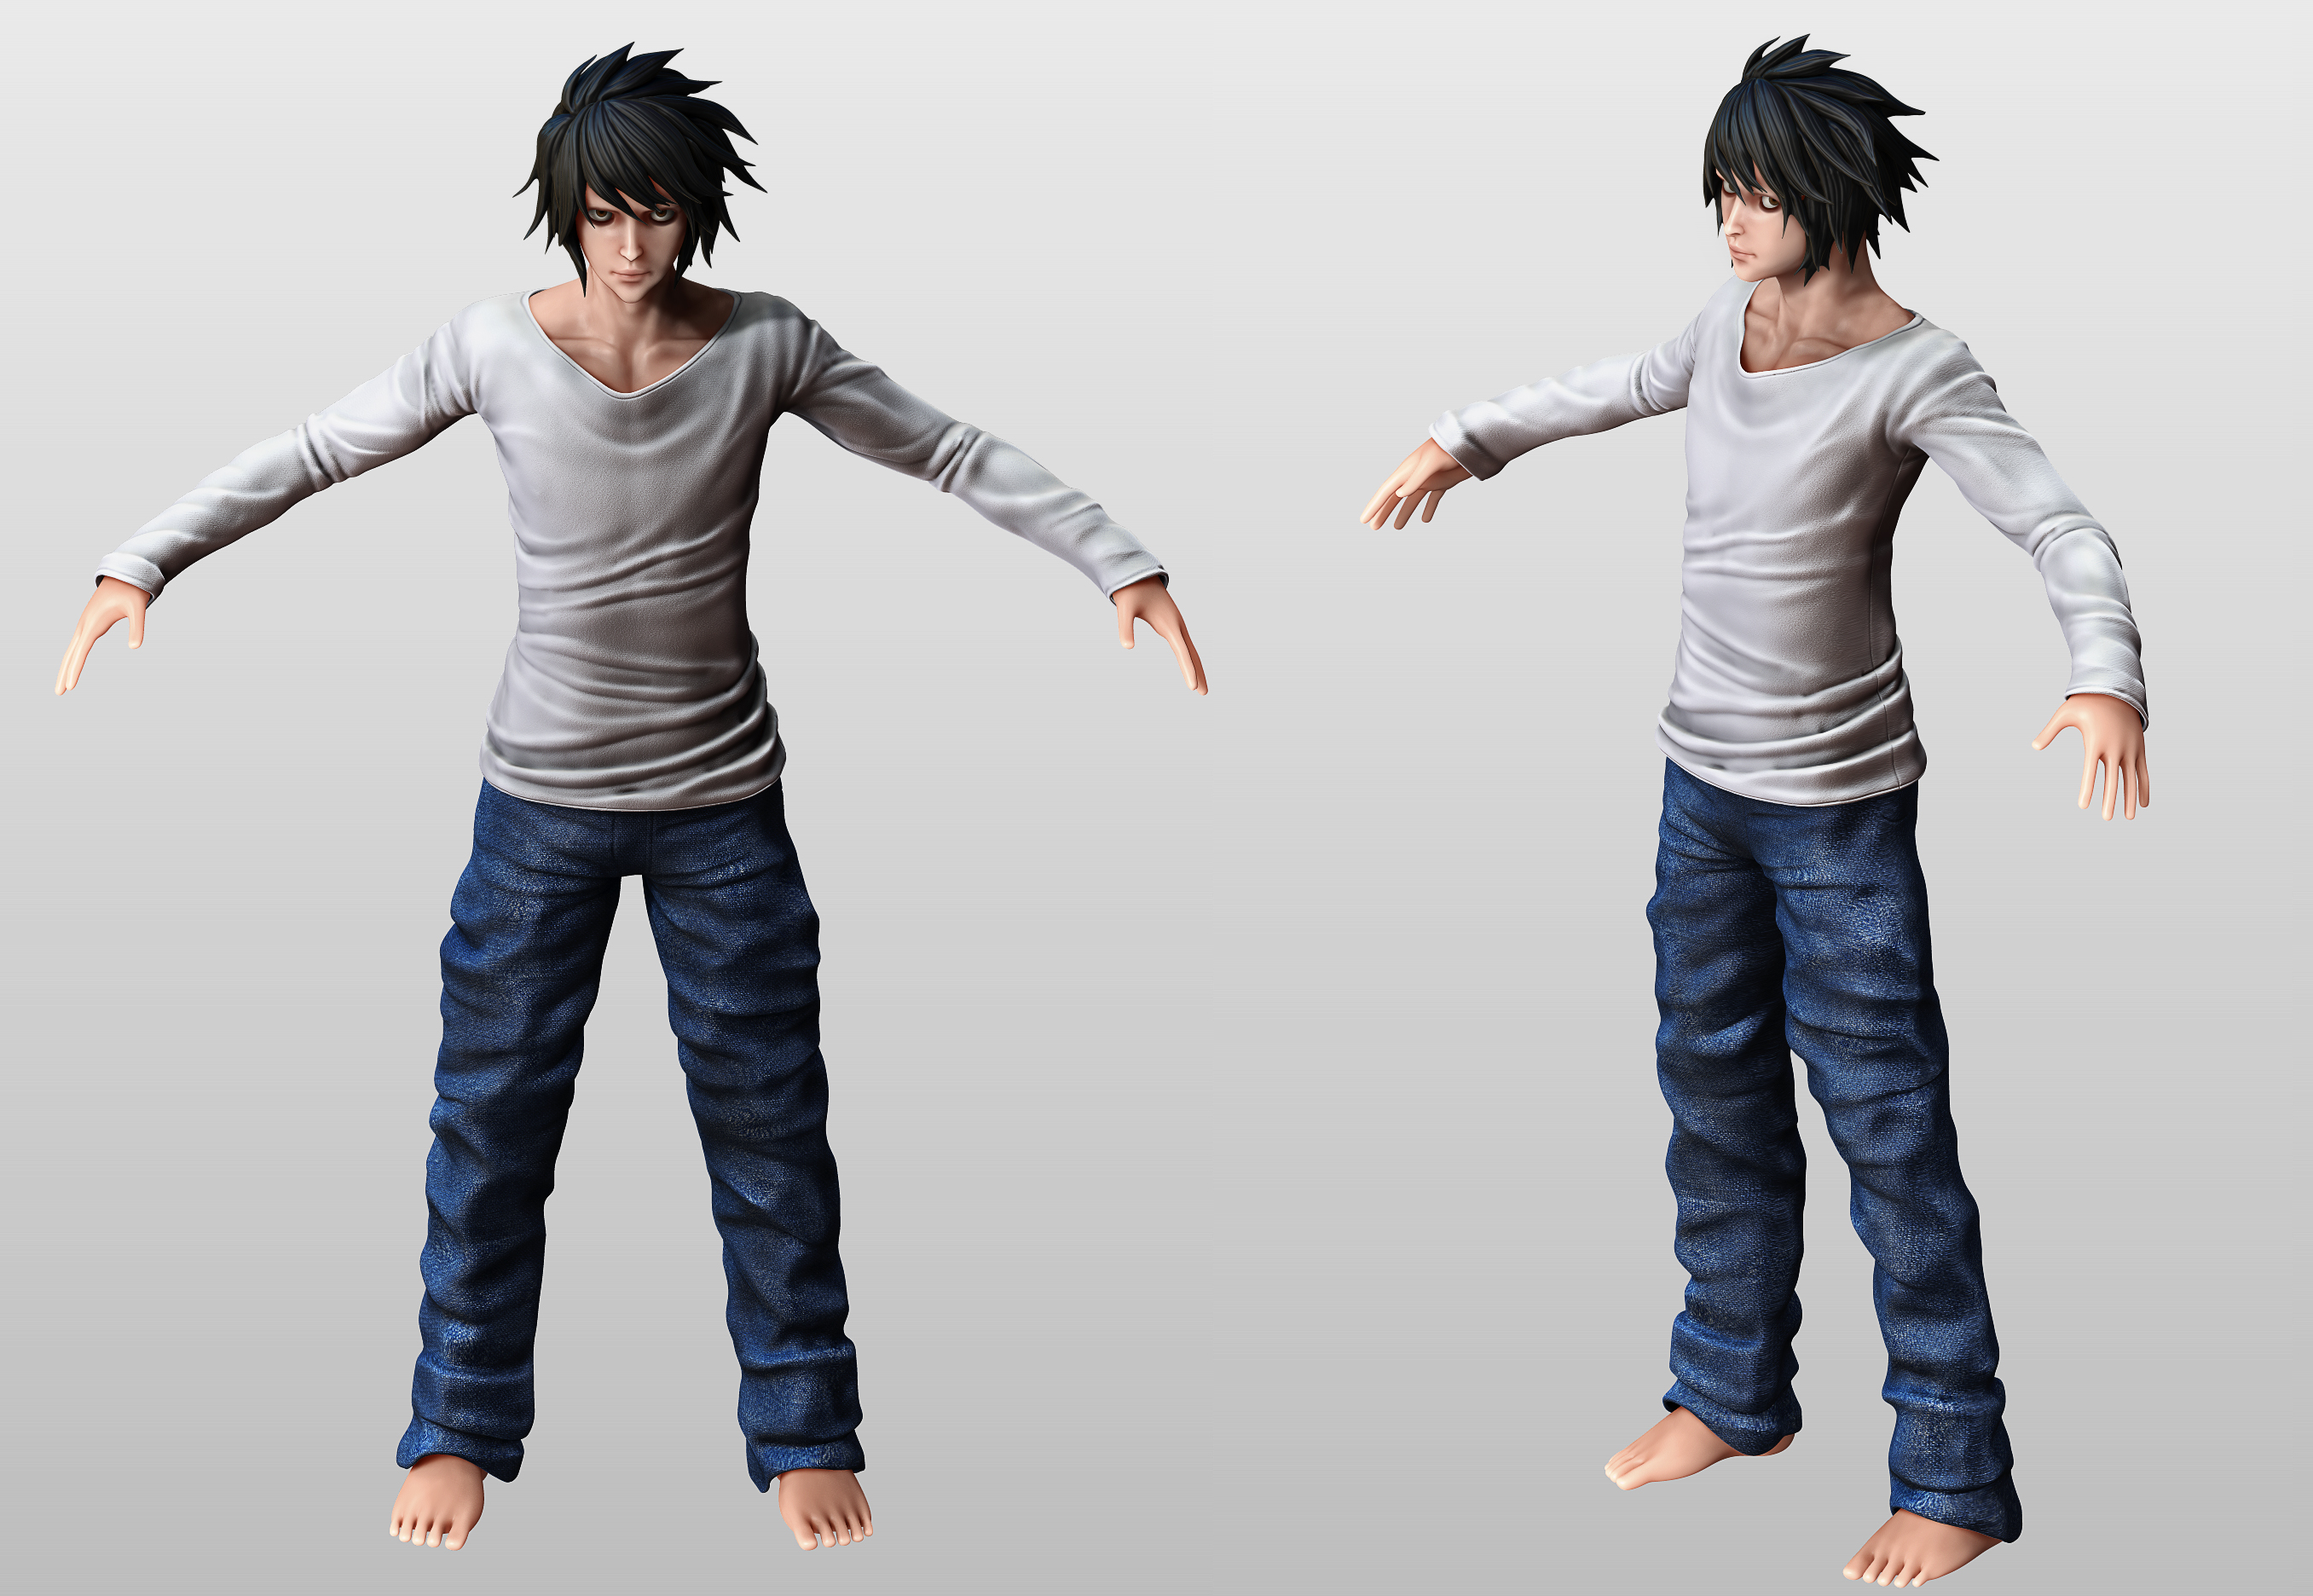 Doku  Lawliet  Law L__death_note__wip2_by_tetsuok9999-d64qjdn